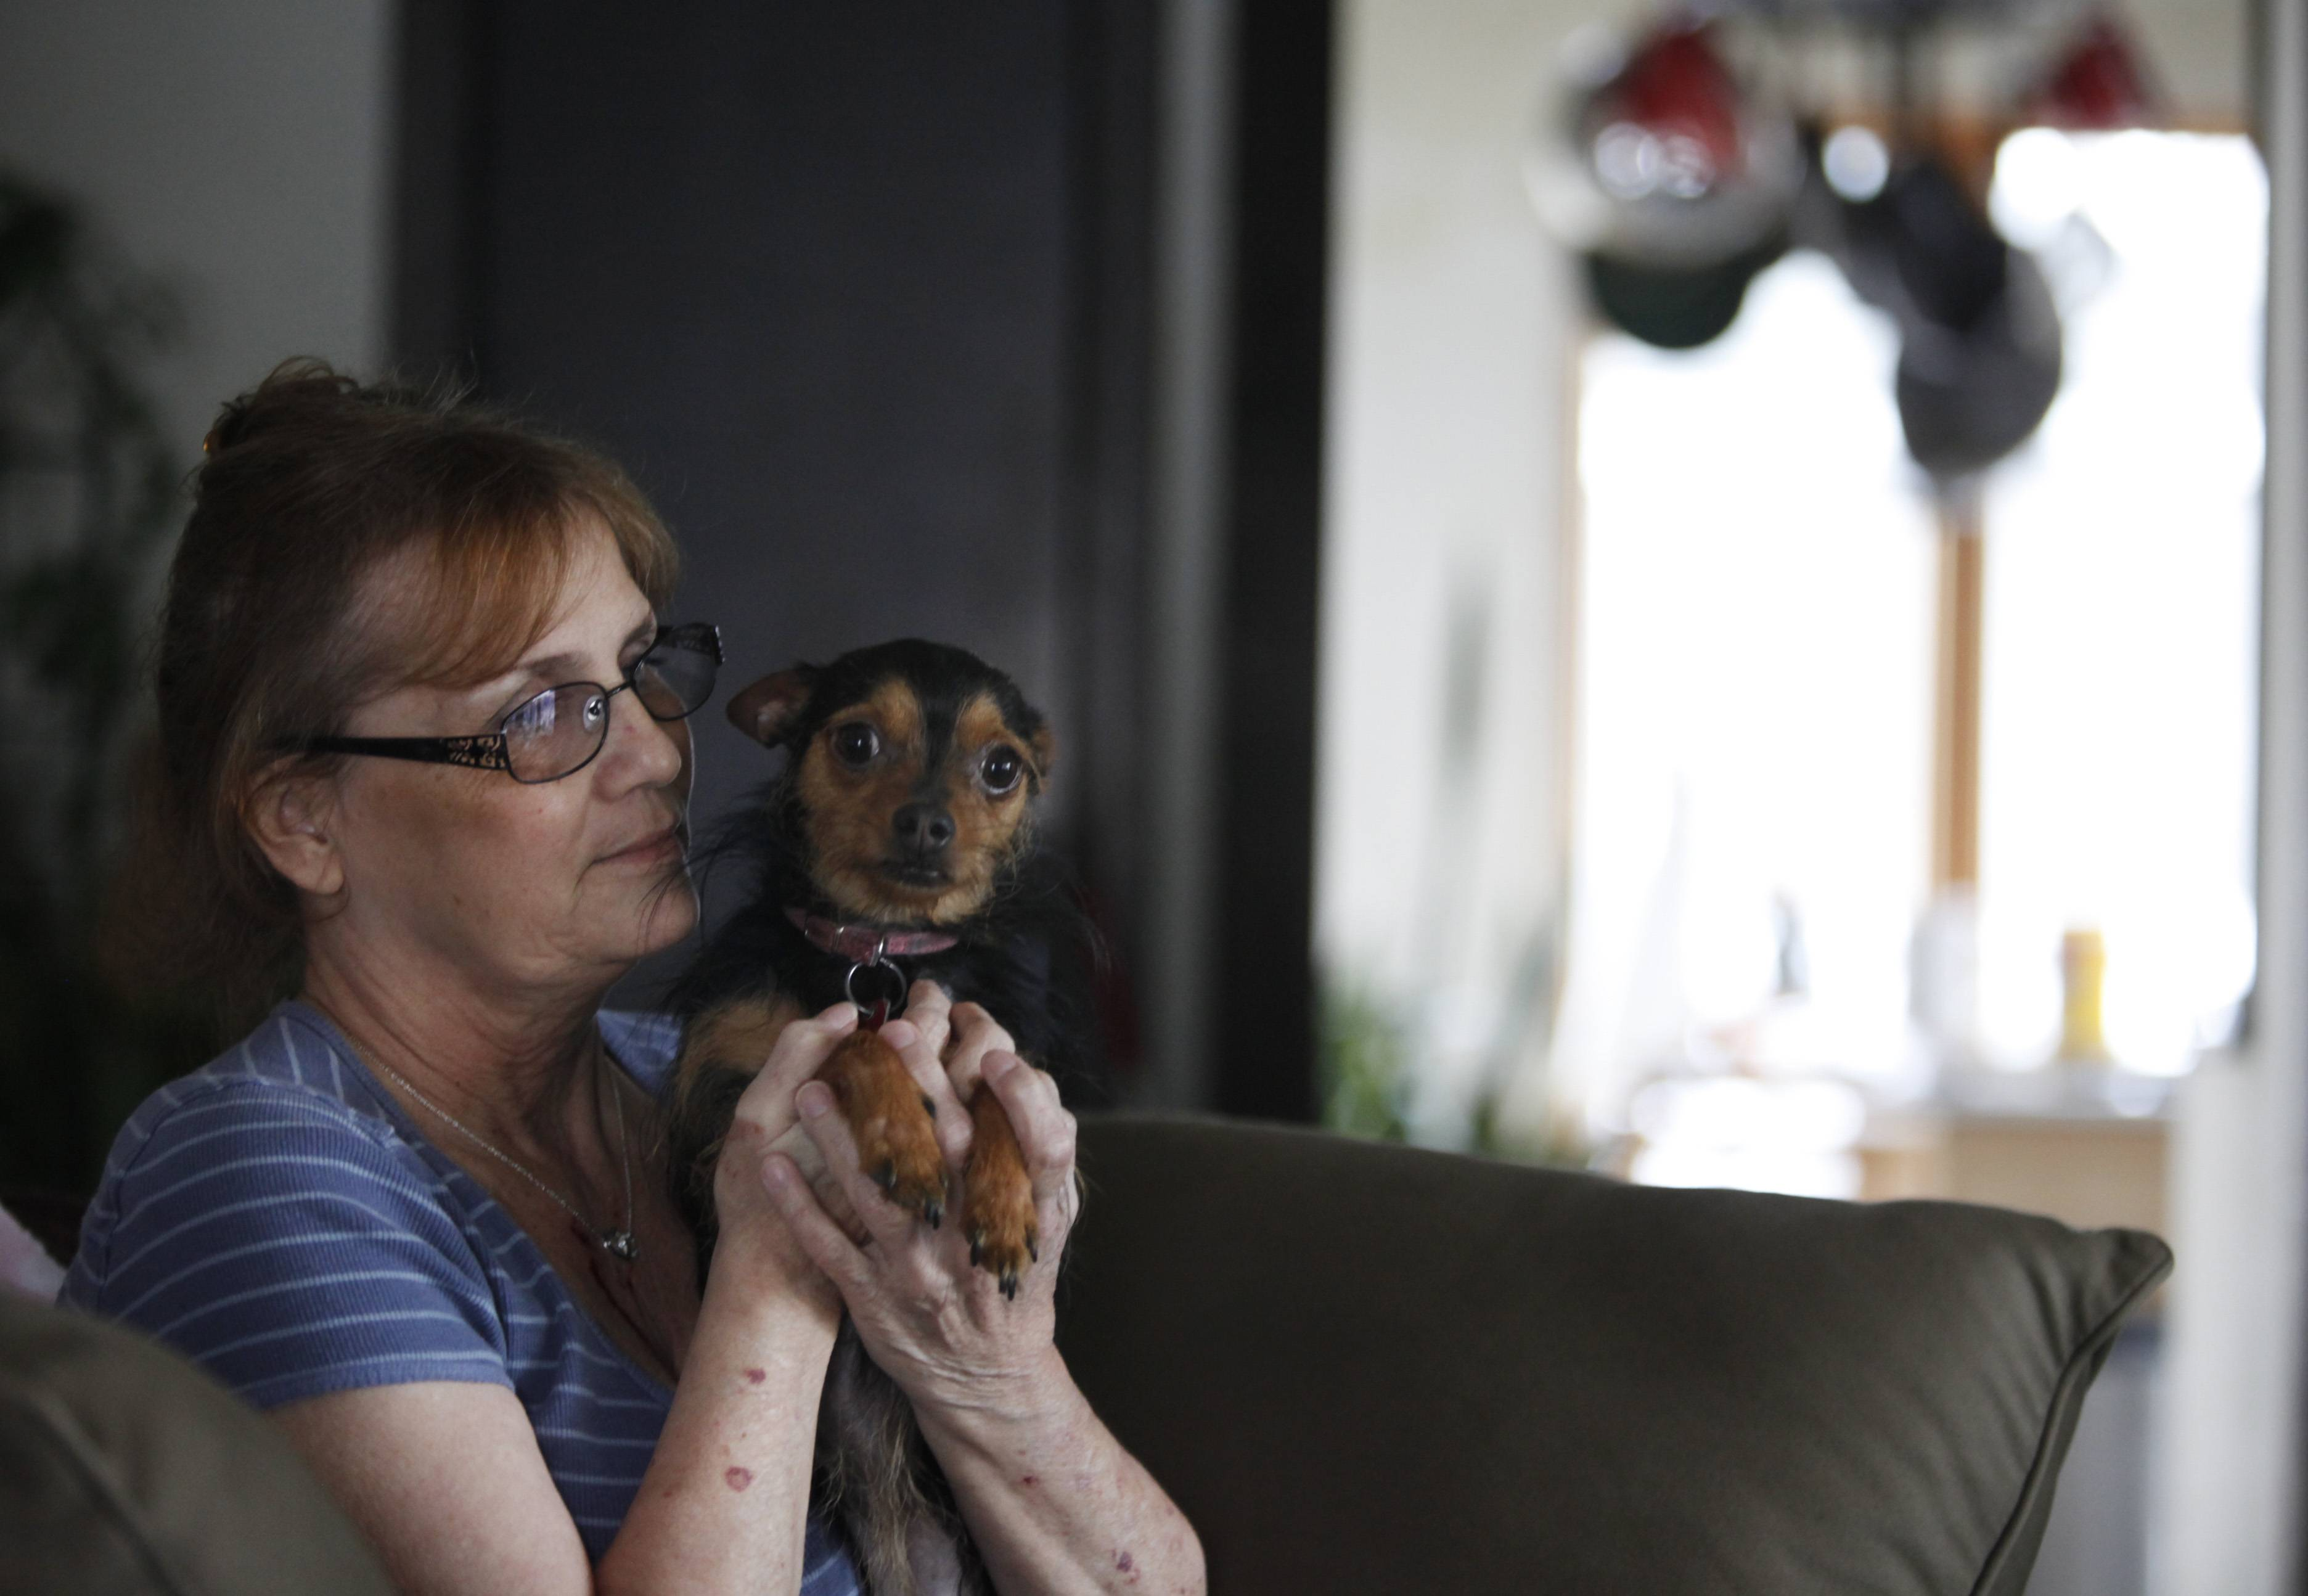 Barrie Komorski of unincorporated Kane County near East Dundee, and her dog, Roxi, were rescued from flooding outside her home along Fox River Drive last spring. Despite a crawl space beneath her home that was flooded and potentially damaged, and losing her unemployment benefits from a job she lost in 2012, Komorski has no plans to leave the flood-prone area.